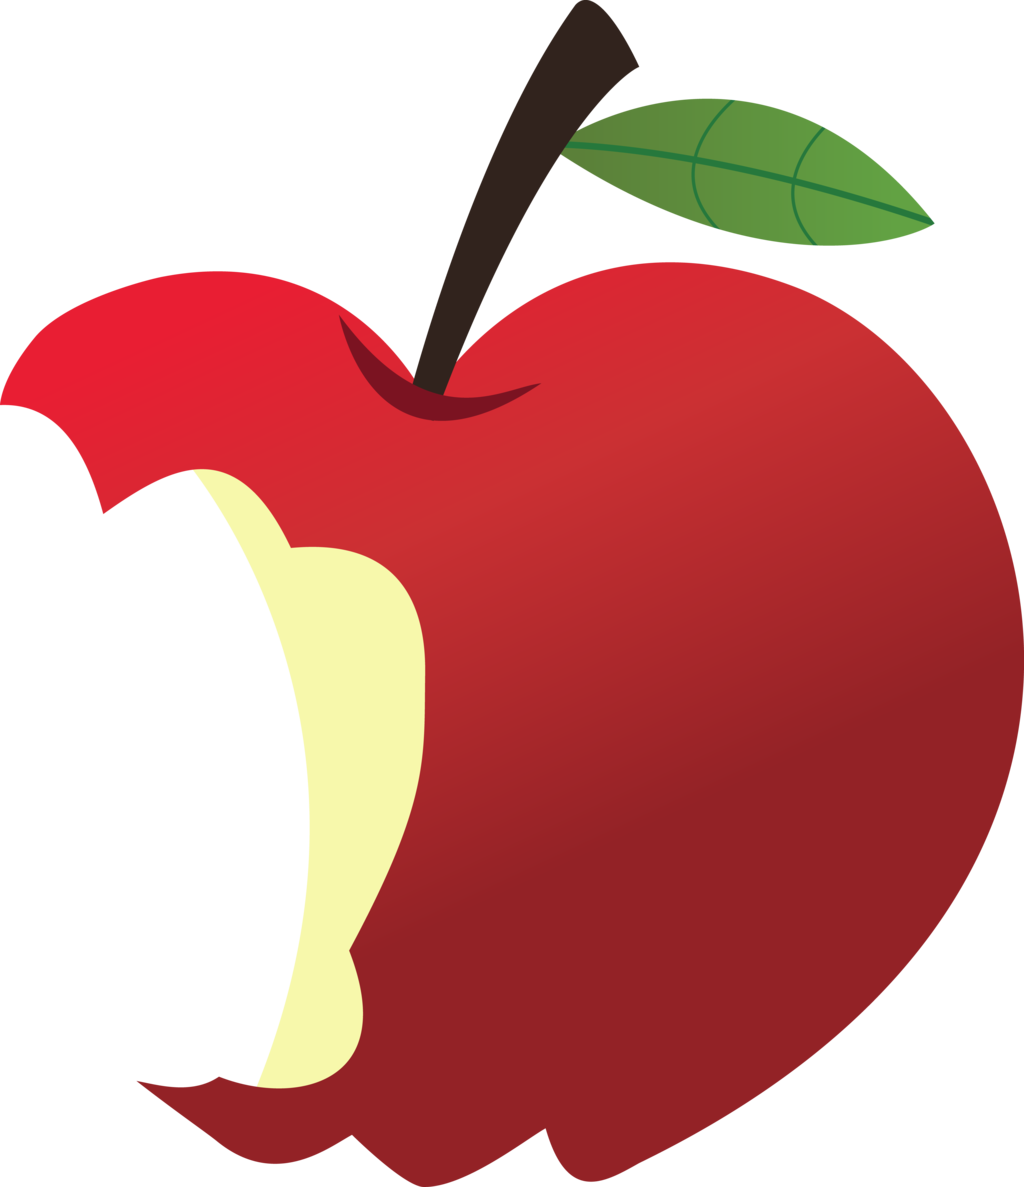 Apple flat clipart royalty free library Bitten Apple Clipart - Imagens de clip art gratuitas | PINTURA EM ... royalty free library